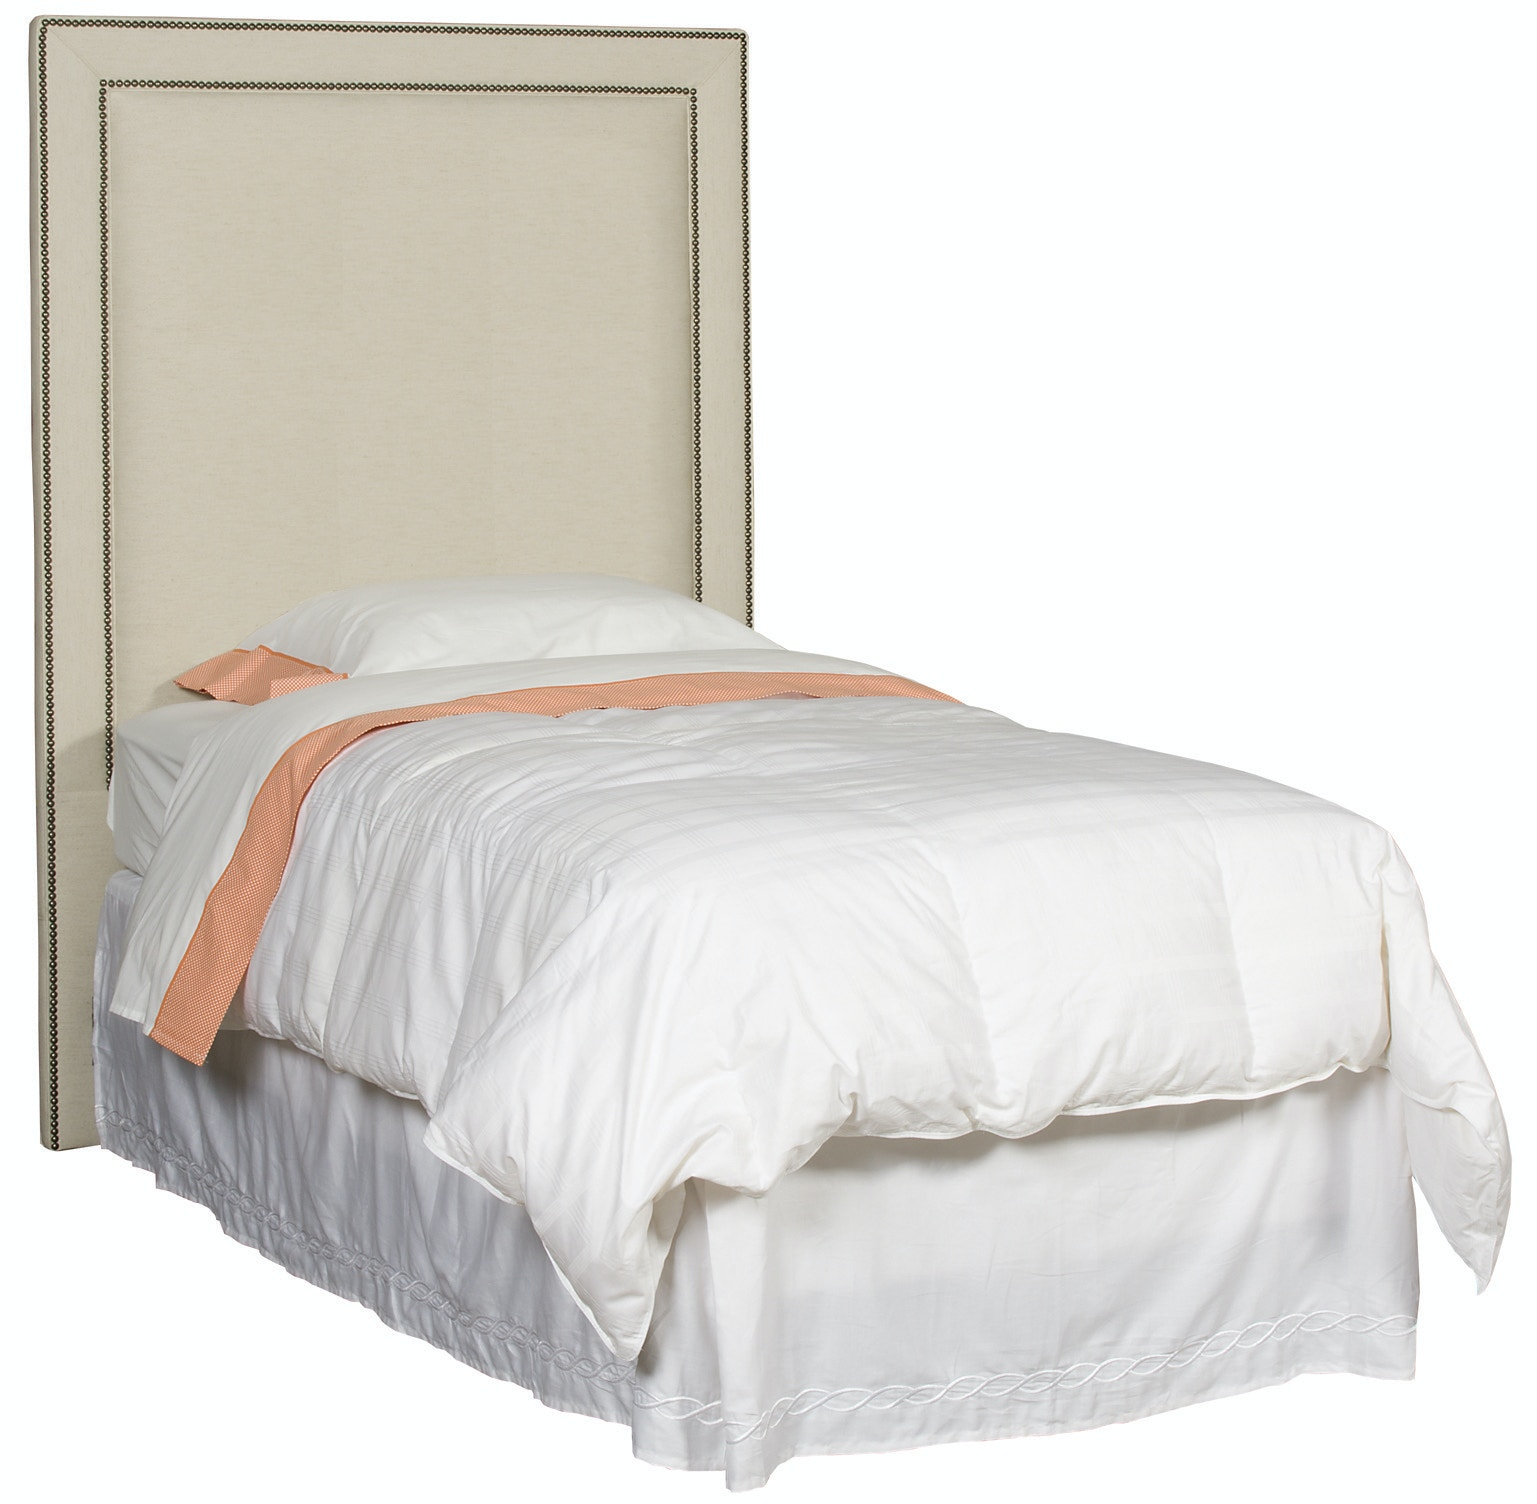 Vanguard Furniture Hillary / Hank Twin Headboard 503CT H